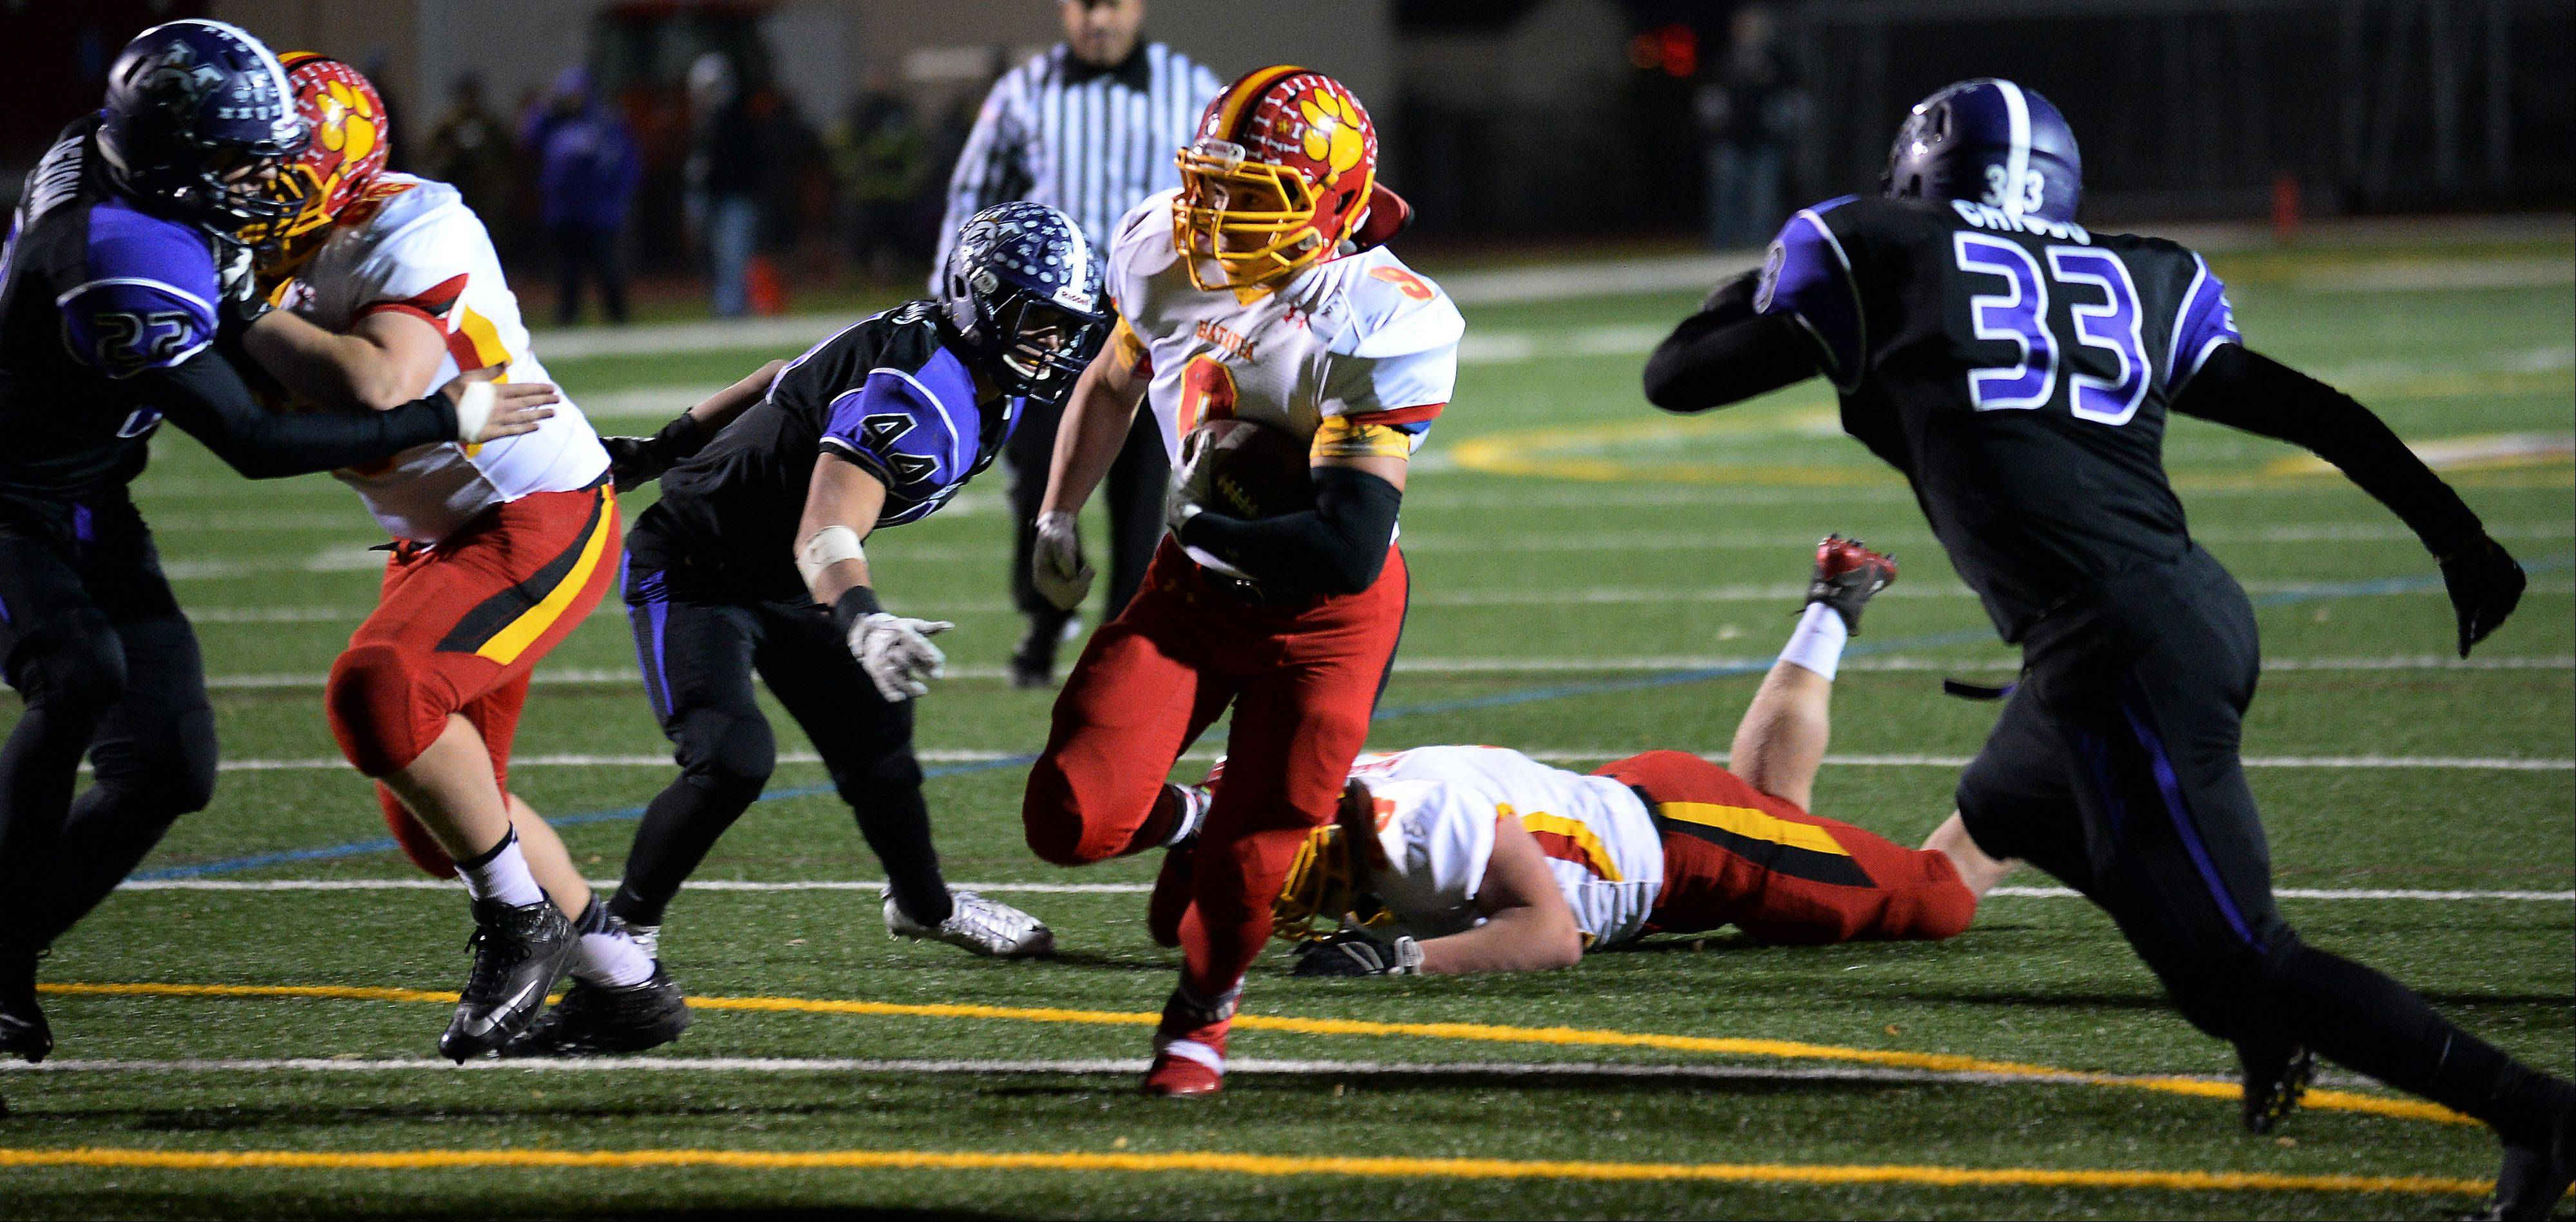 Batavia's Anthony Moneghini runs past Rolling Meadows' Nico Chiodo for a fourth-quarter touchdown in the second round of the Class 6A playoffs at Rolling Meadows on Saturday.